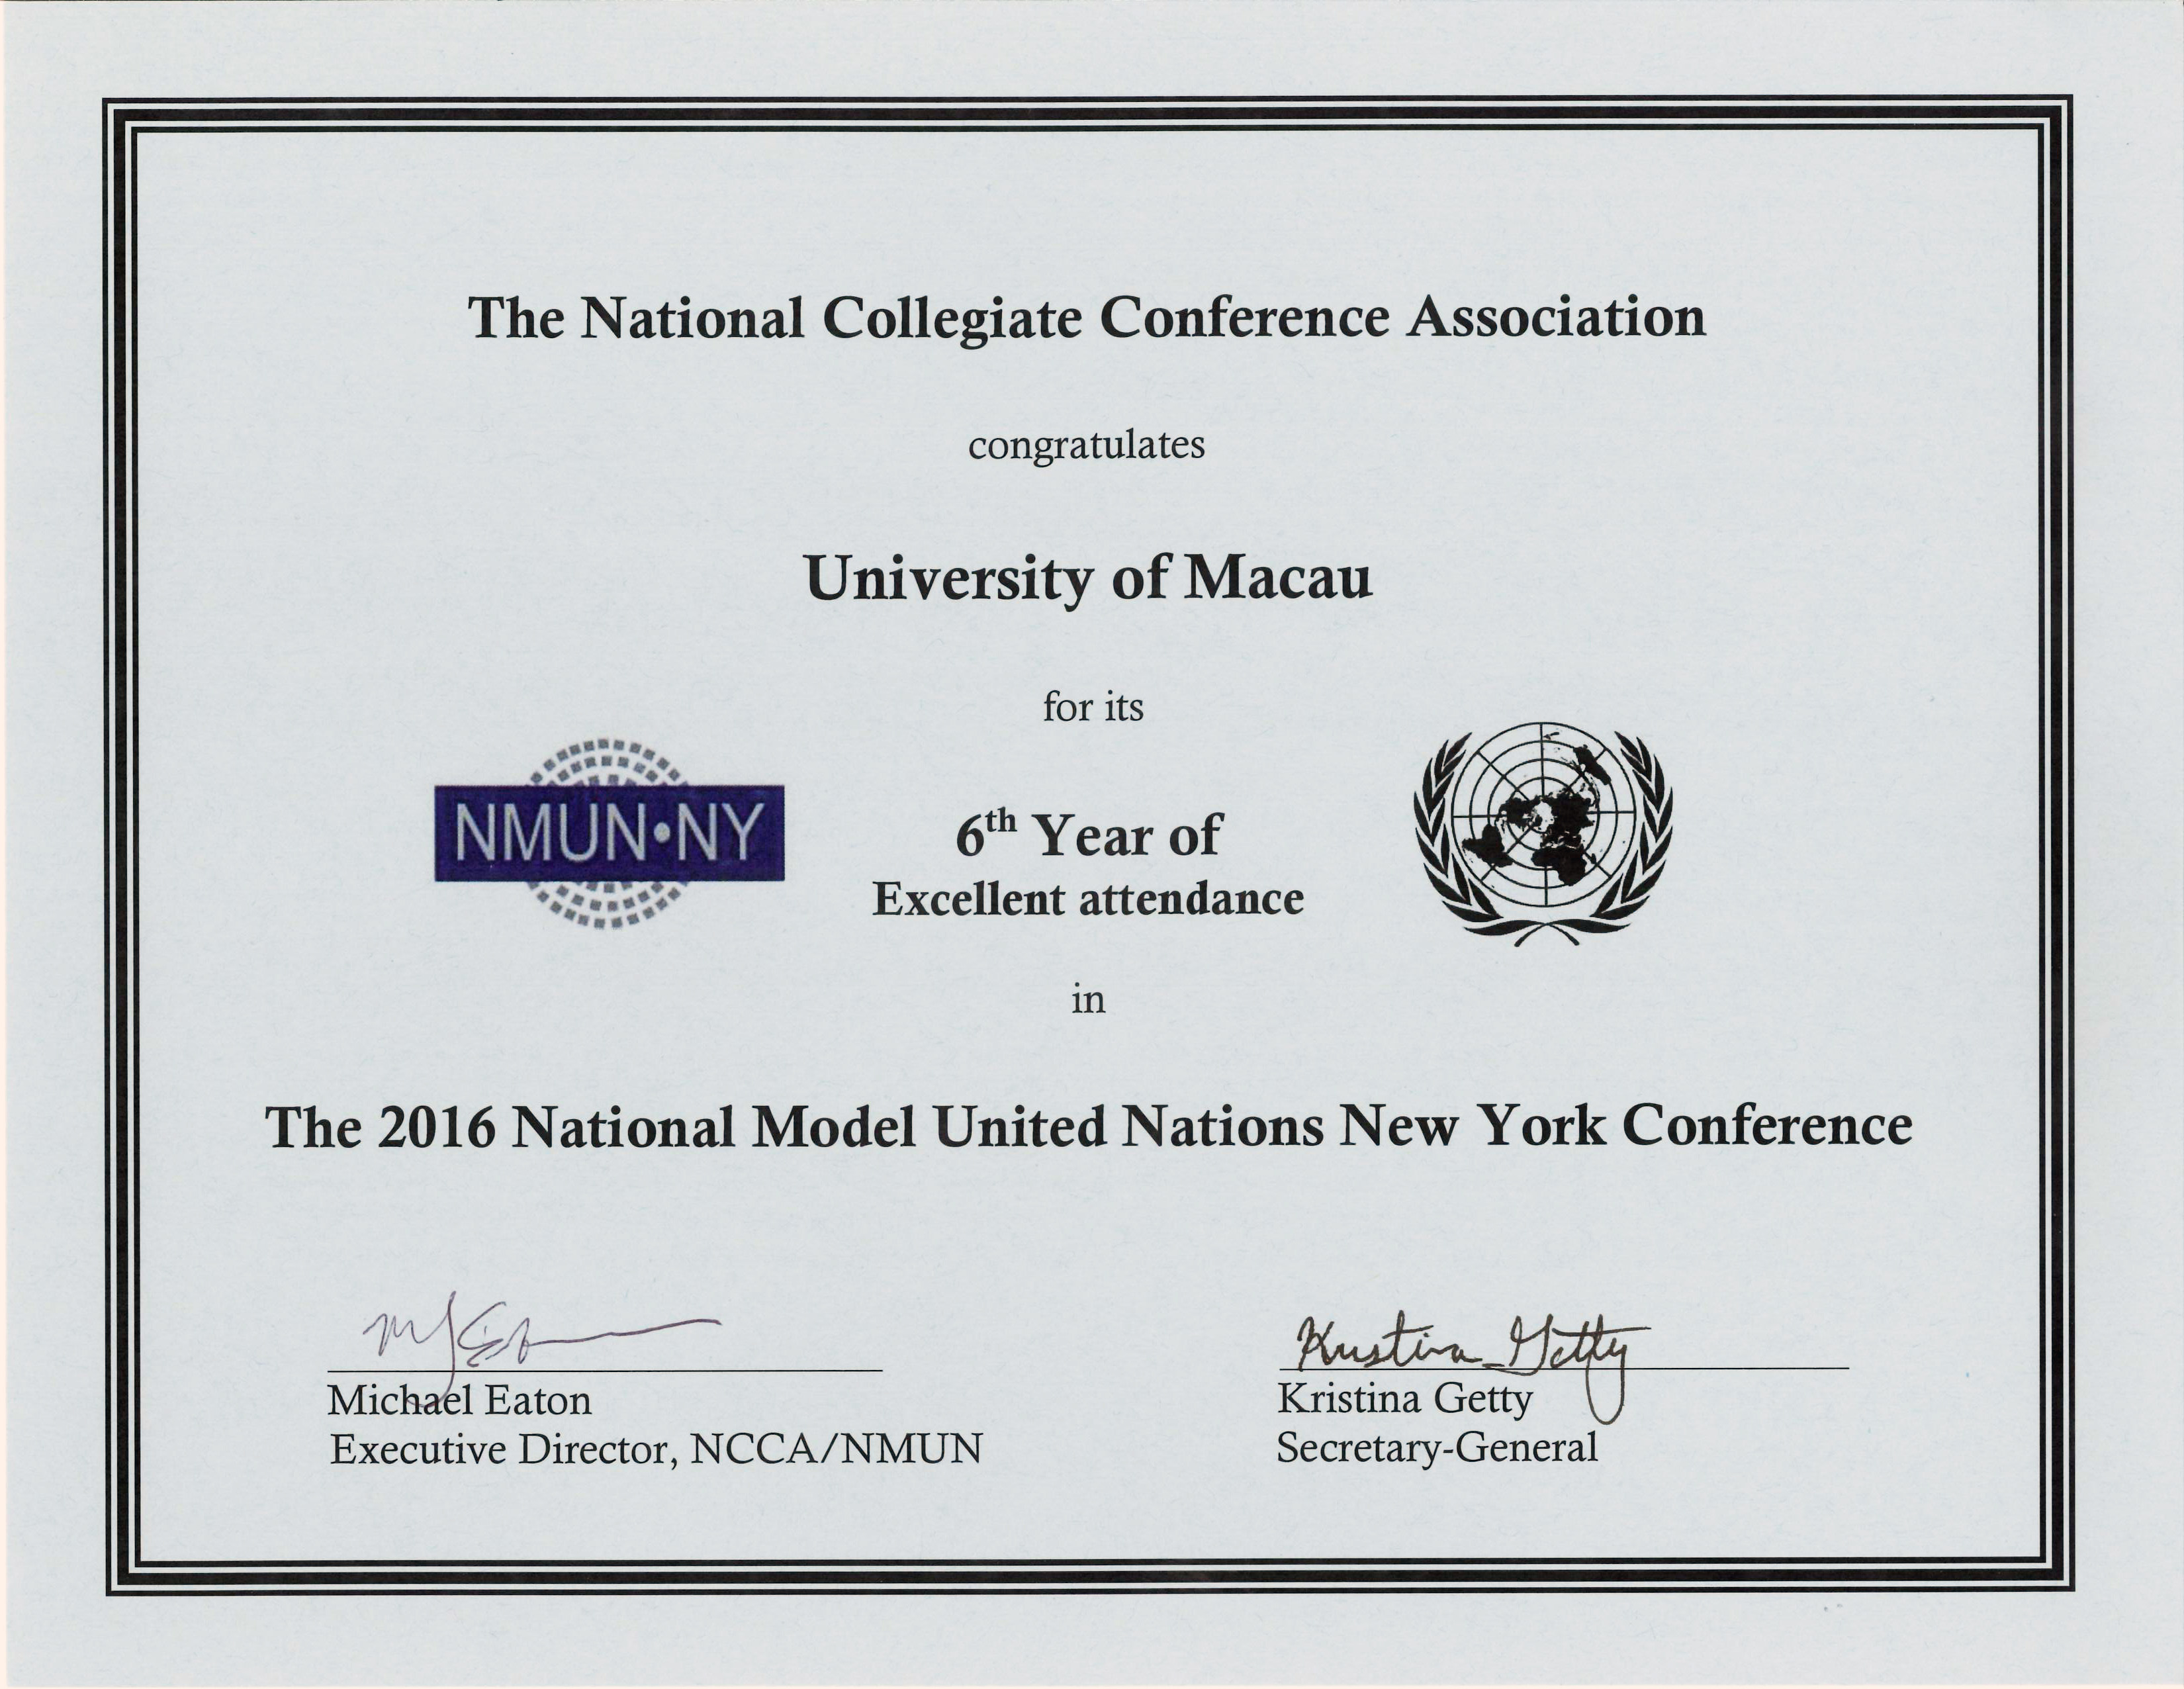 UM's delegation receives a certificate for its sixth consecutive attendance in the National Model United Nations New York Conference 2016